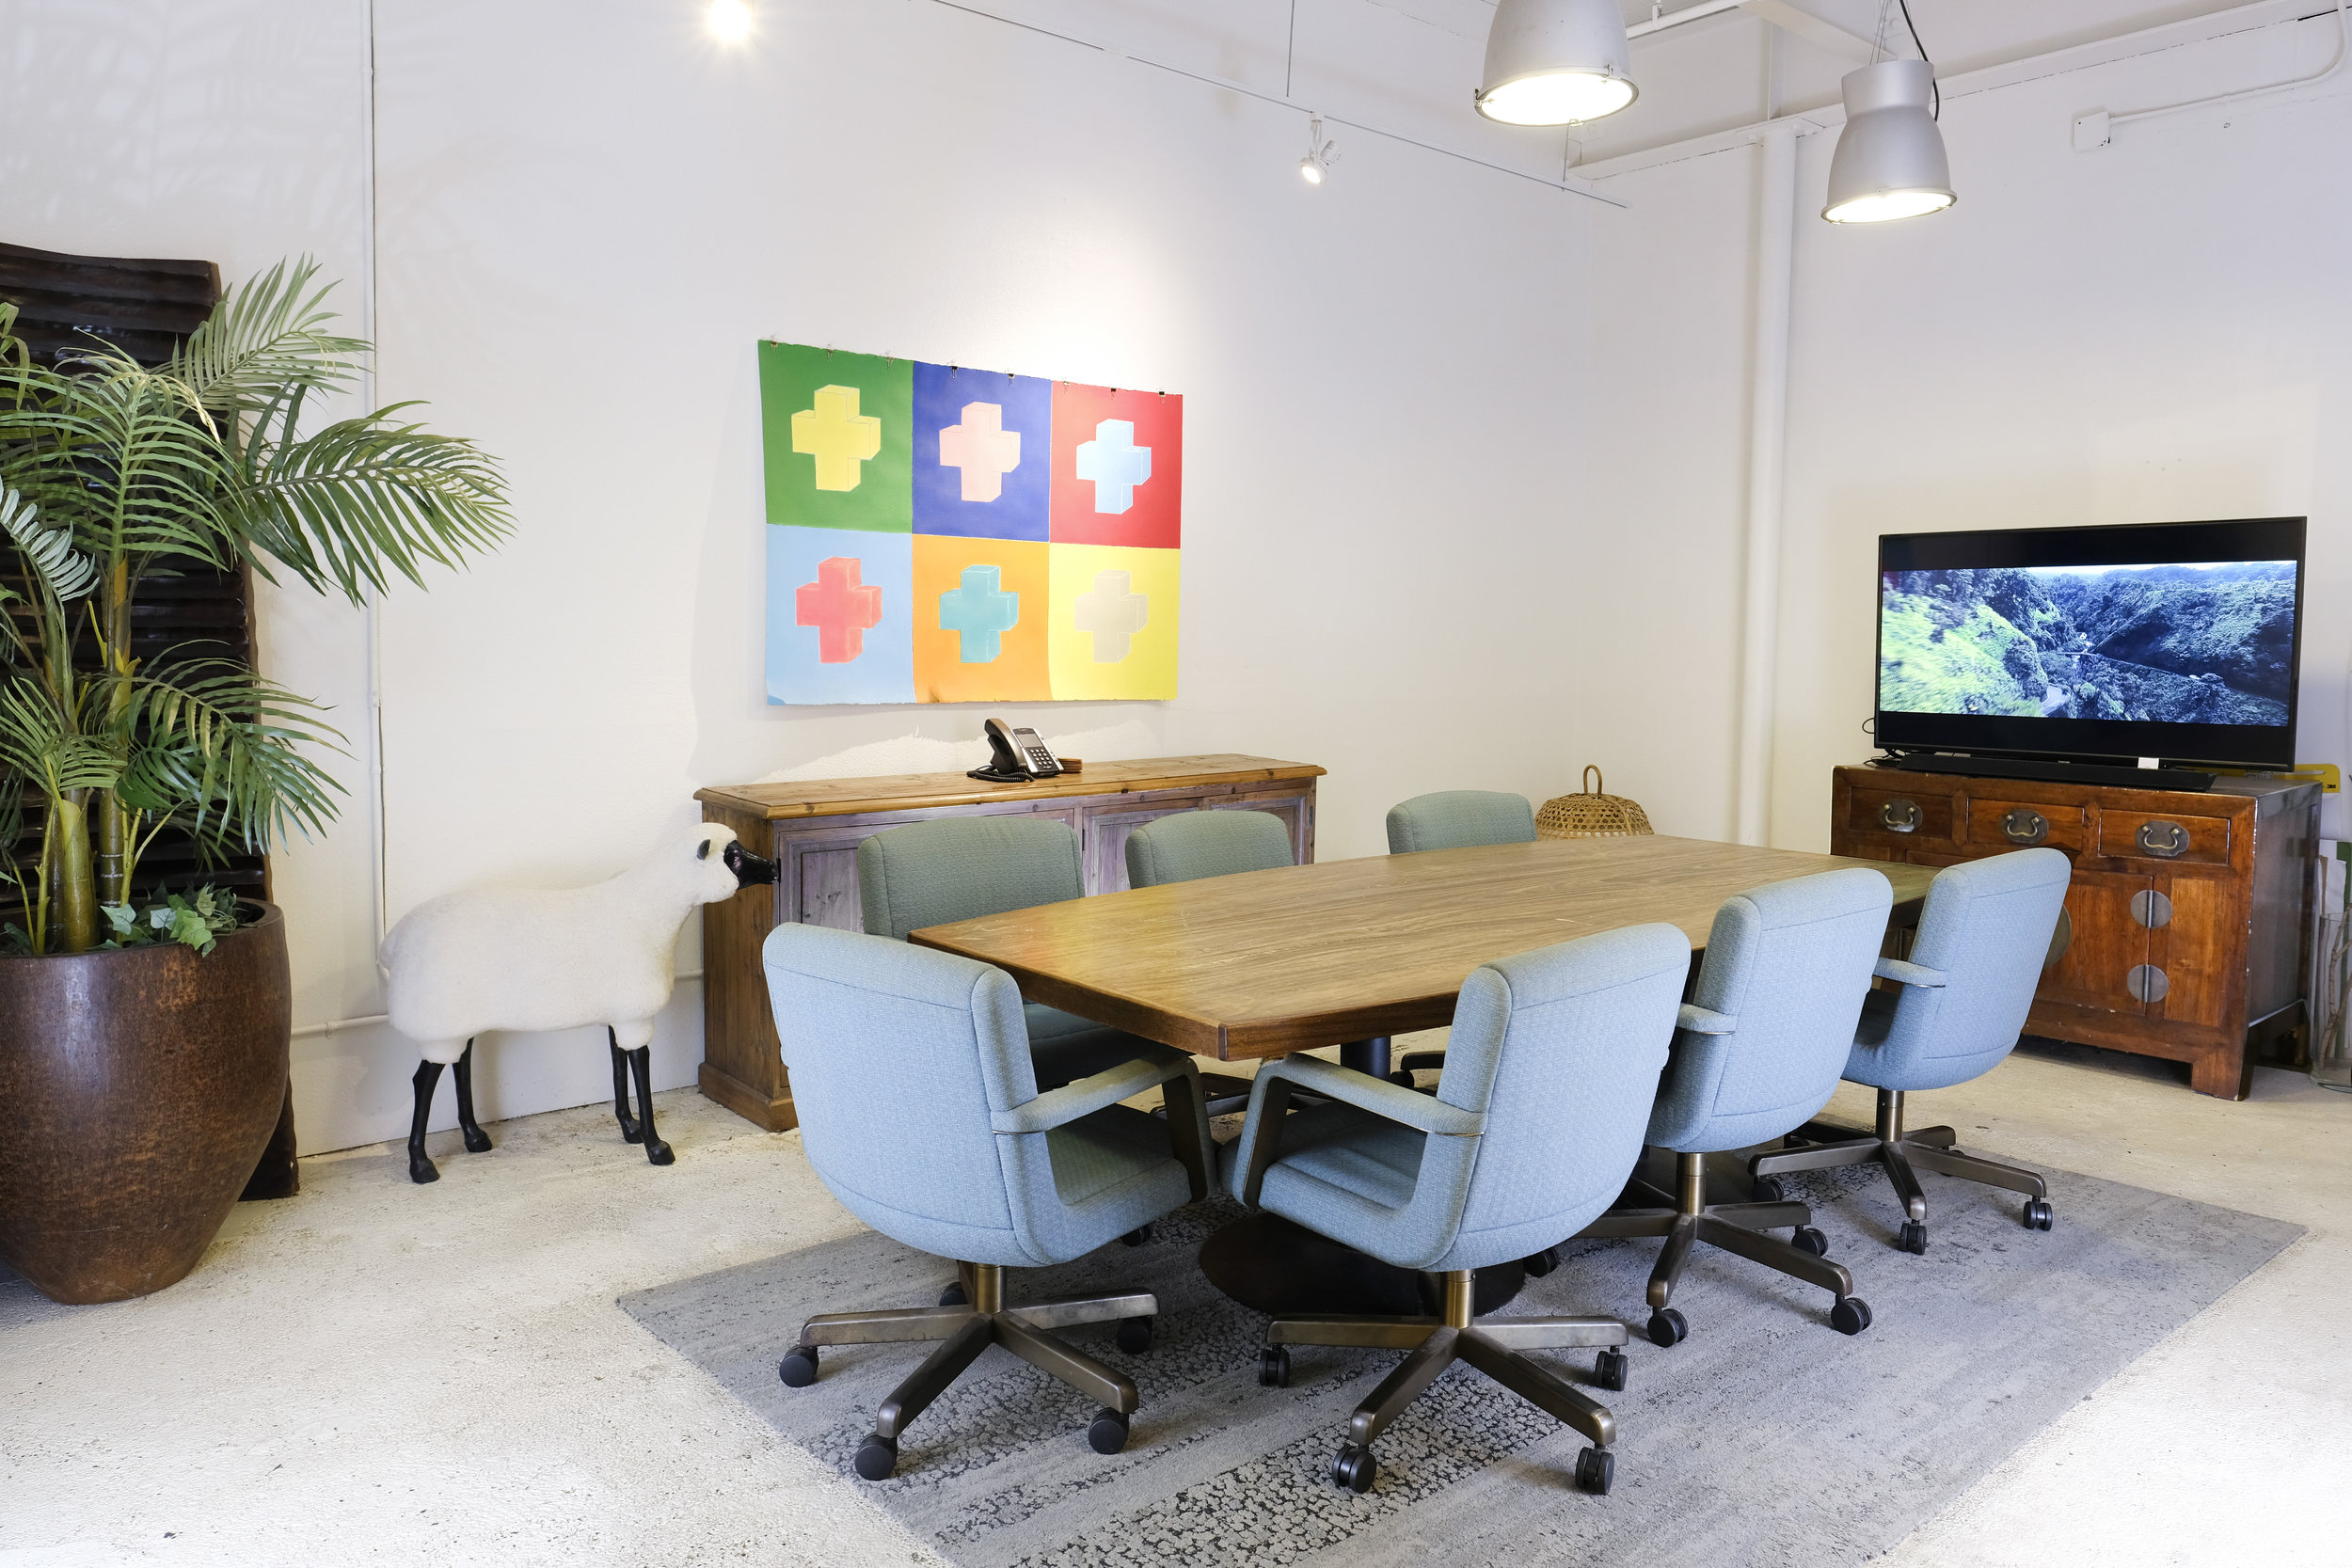 co-working-space-colorful-desk-chairs